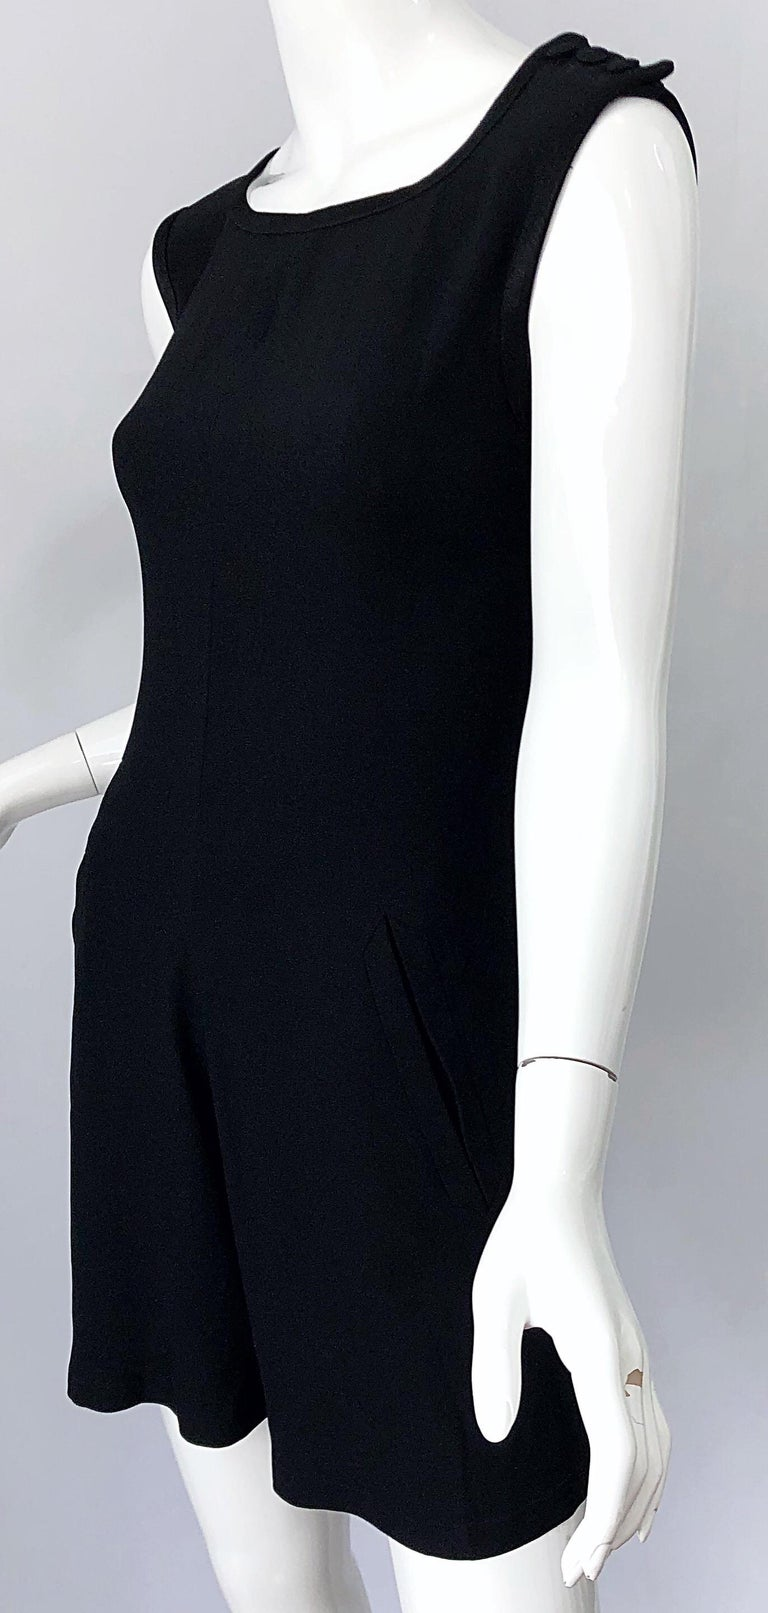 Vintage Yves Saint Laurent Romper Black Rayon Sleeveless 1990s One Piece 90s  For Sale 8